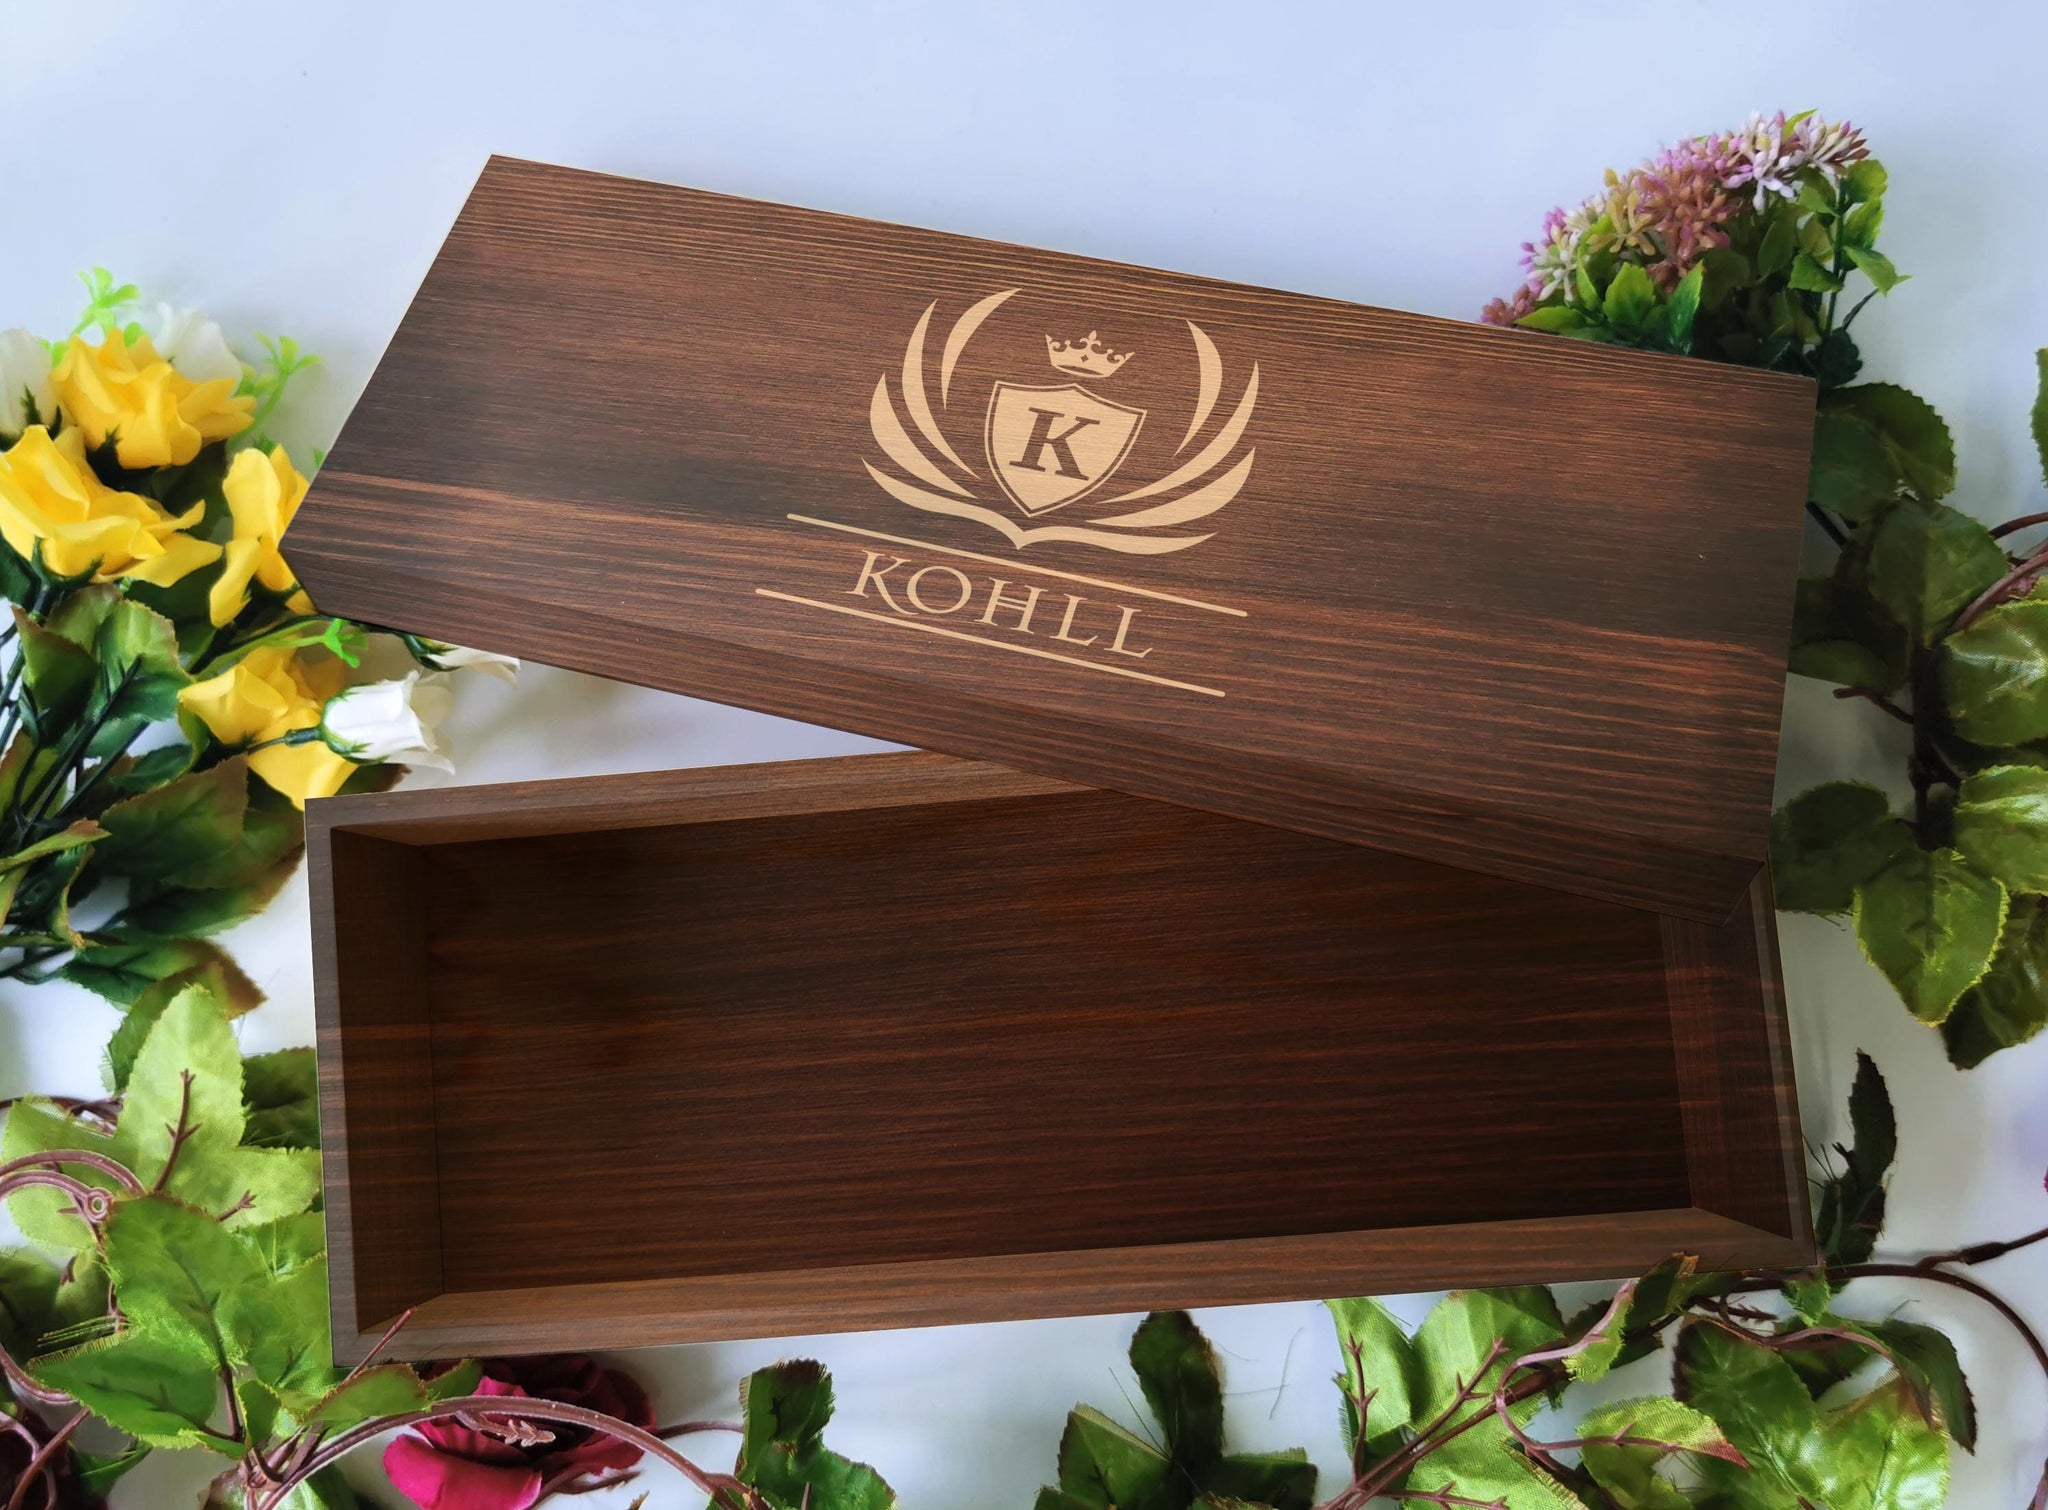 32 x 12.5cm Wooden Gift Box (stained)